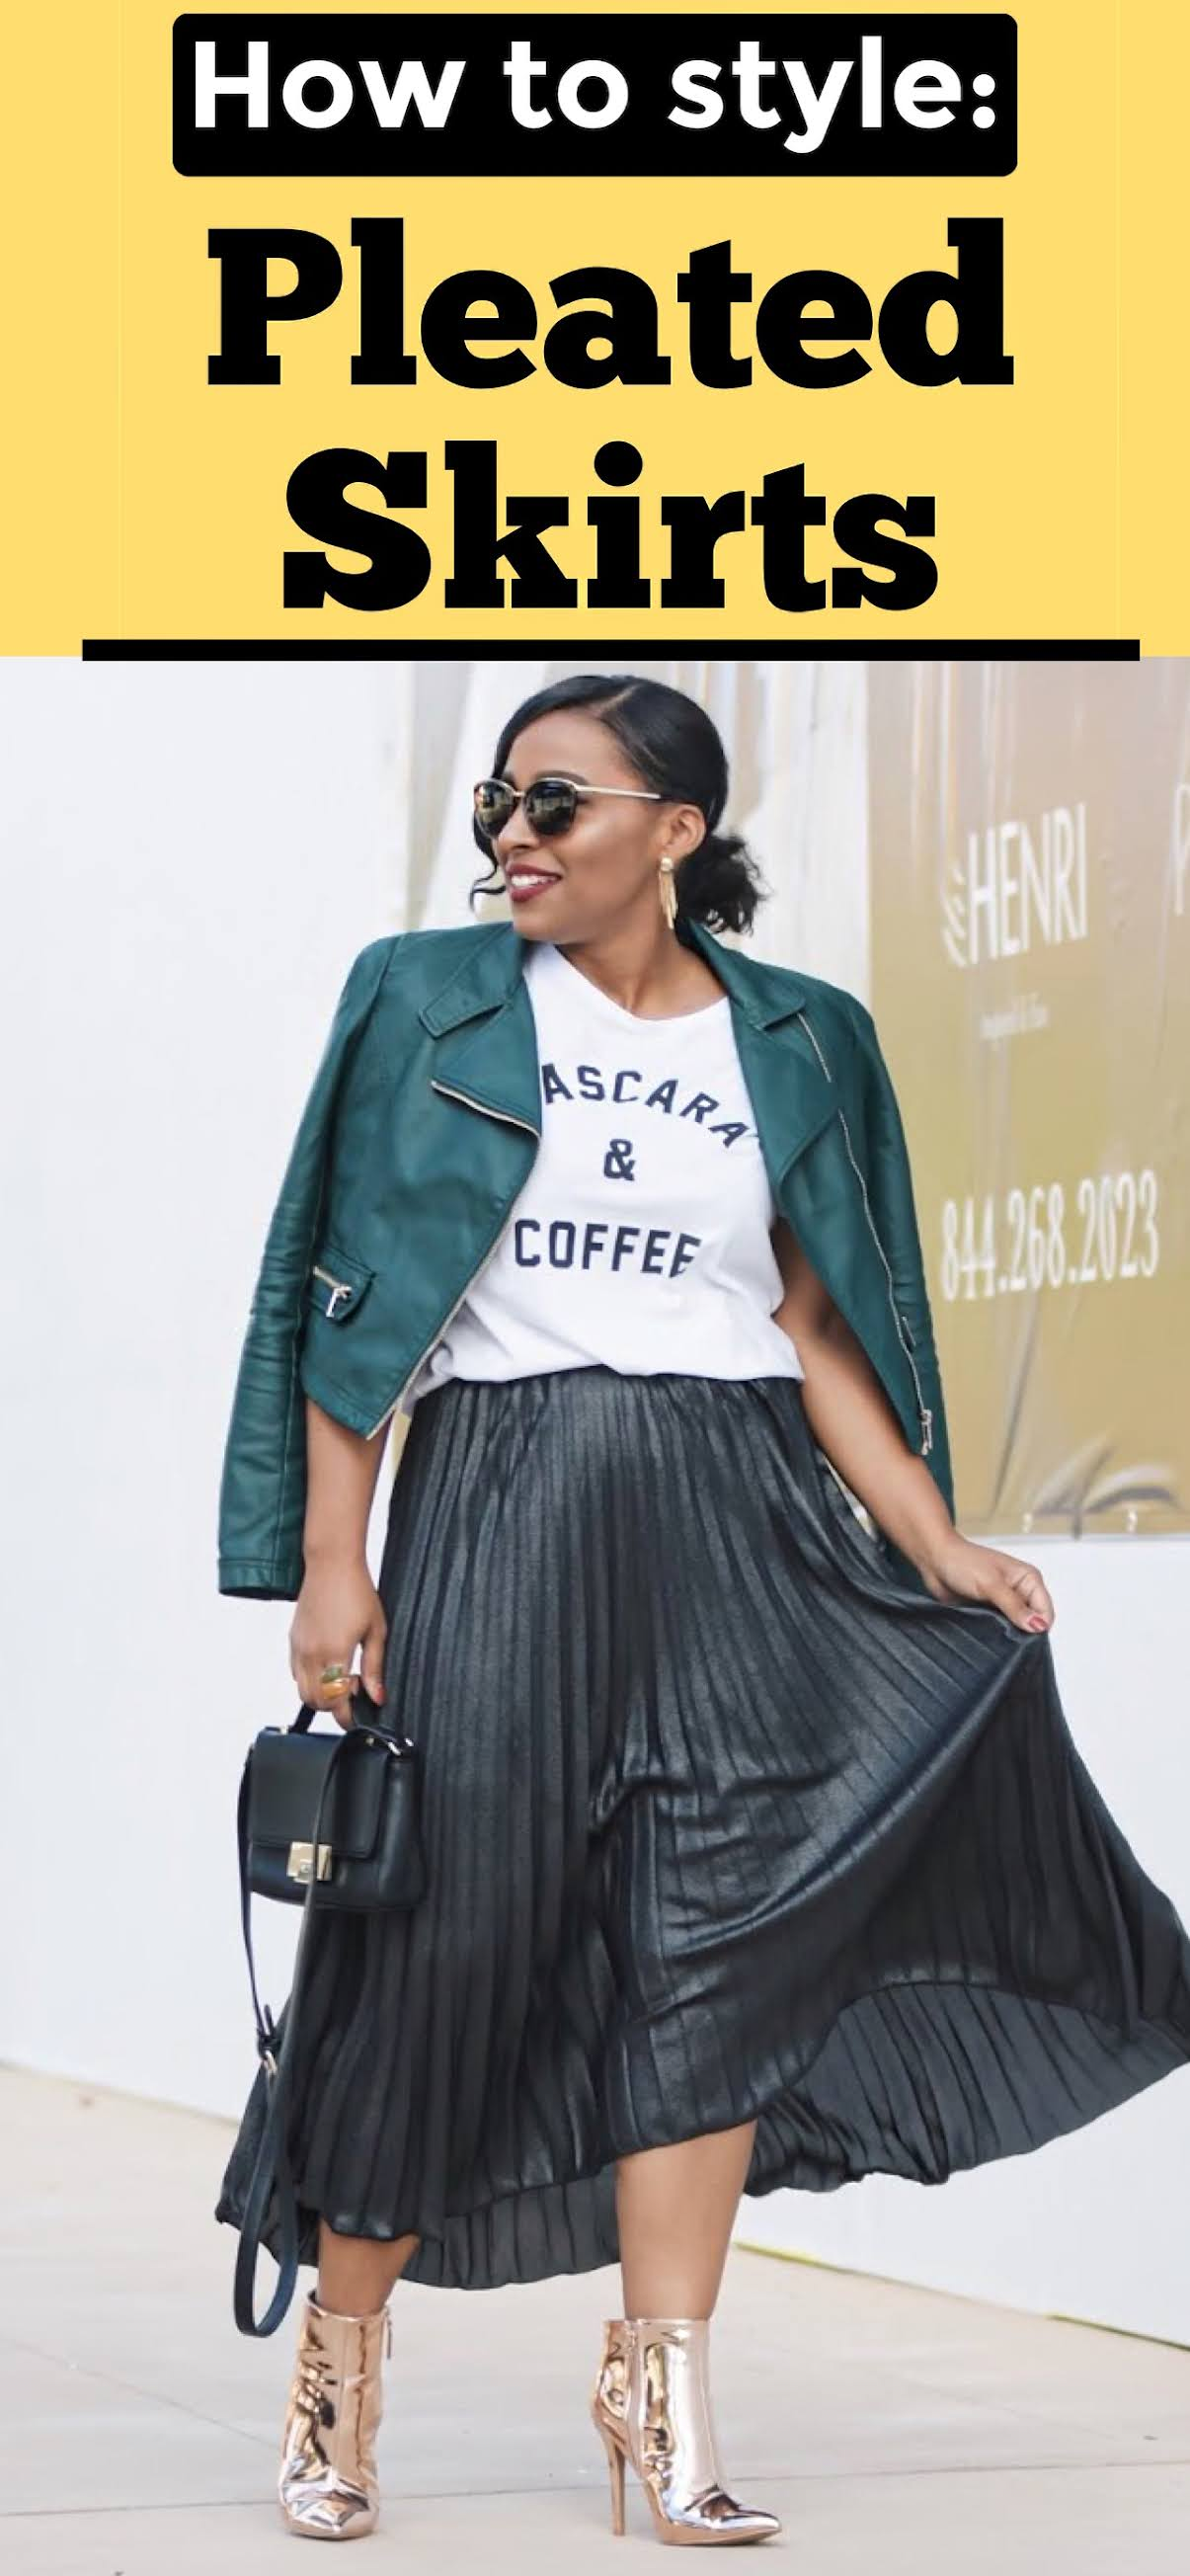 how to style a pleated skirt, pleated skirt outfits, skirt outfit ideas, pattys kloset, long skirts